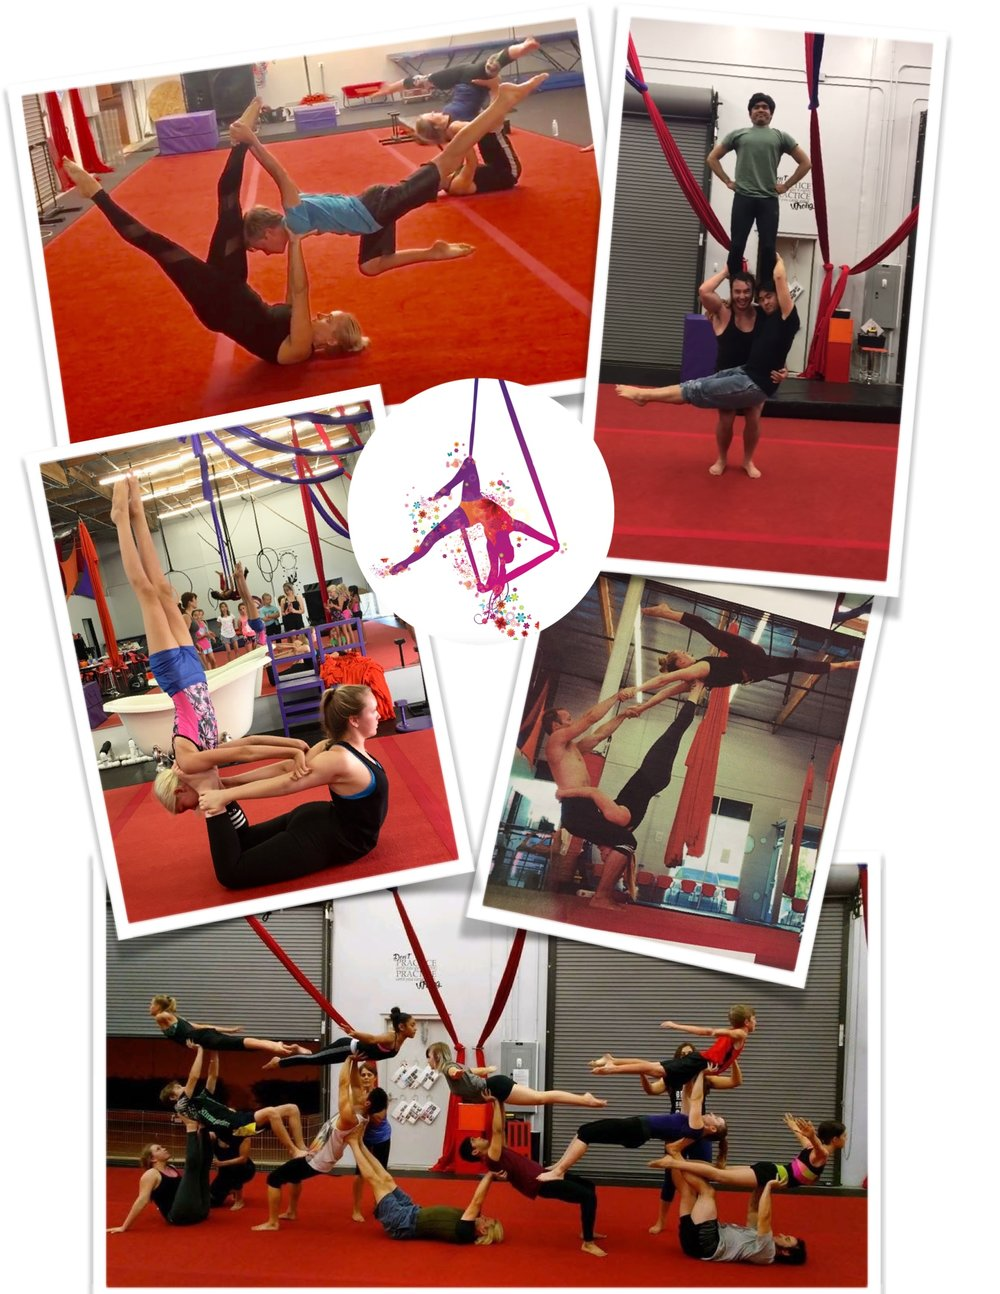 Acro Workshops no text 2017-1.jpg